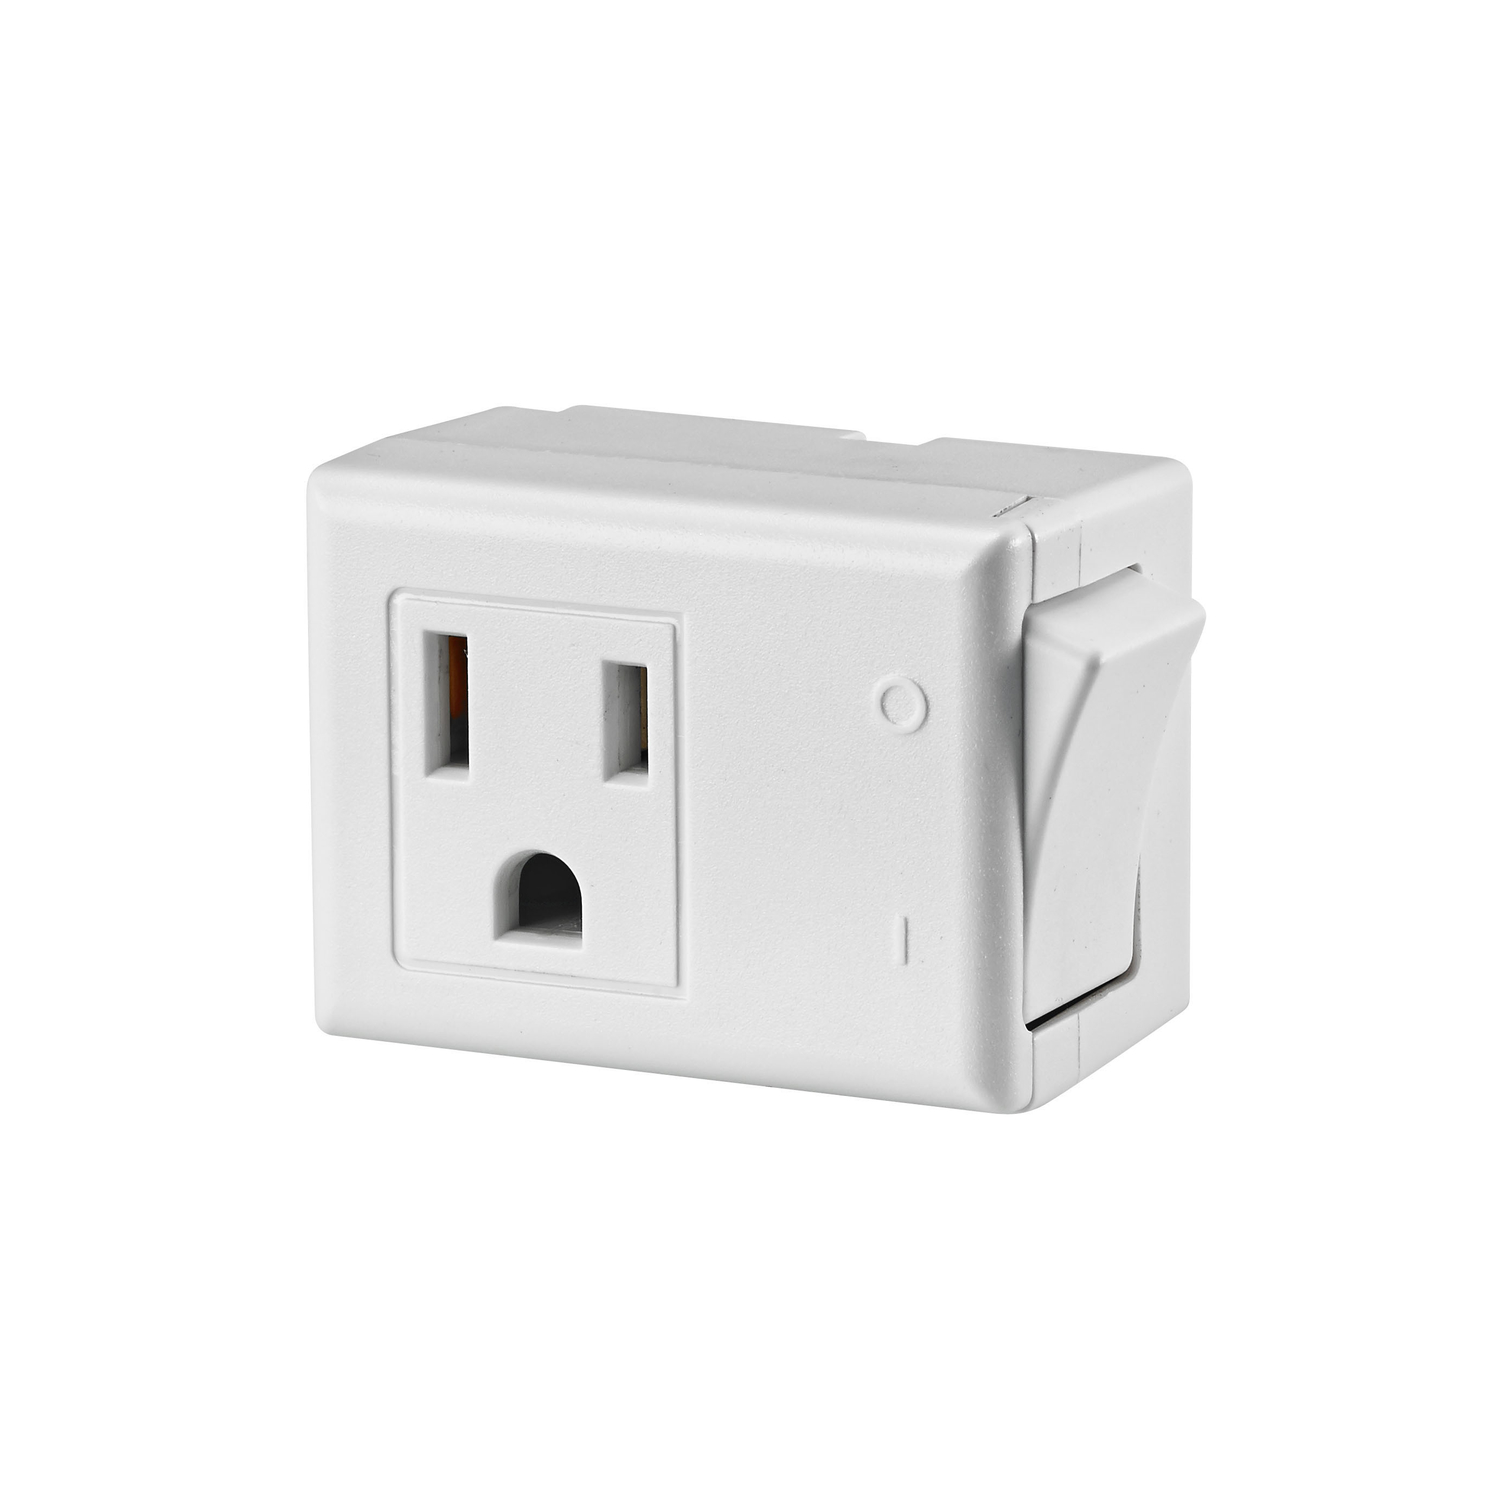 Leviton  Grounded  3 outlets Switch Tap Adapter  1 pk Surge Protection